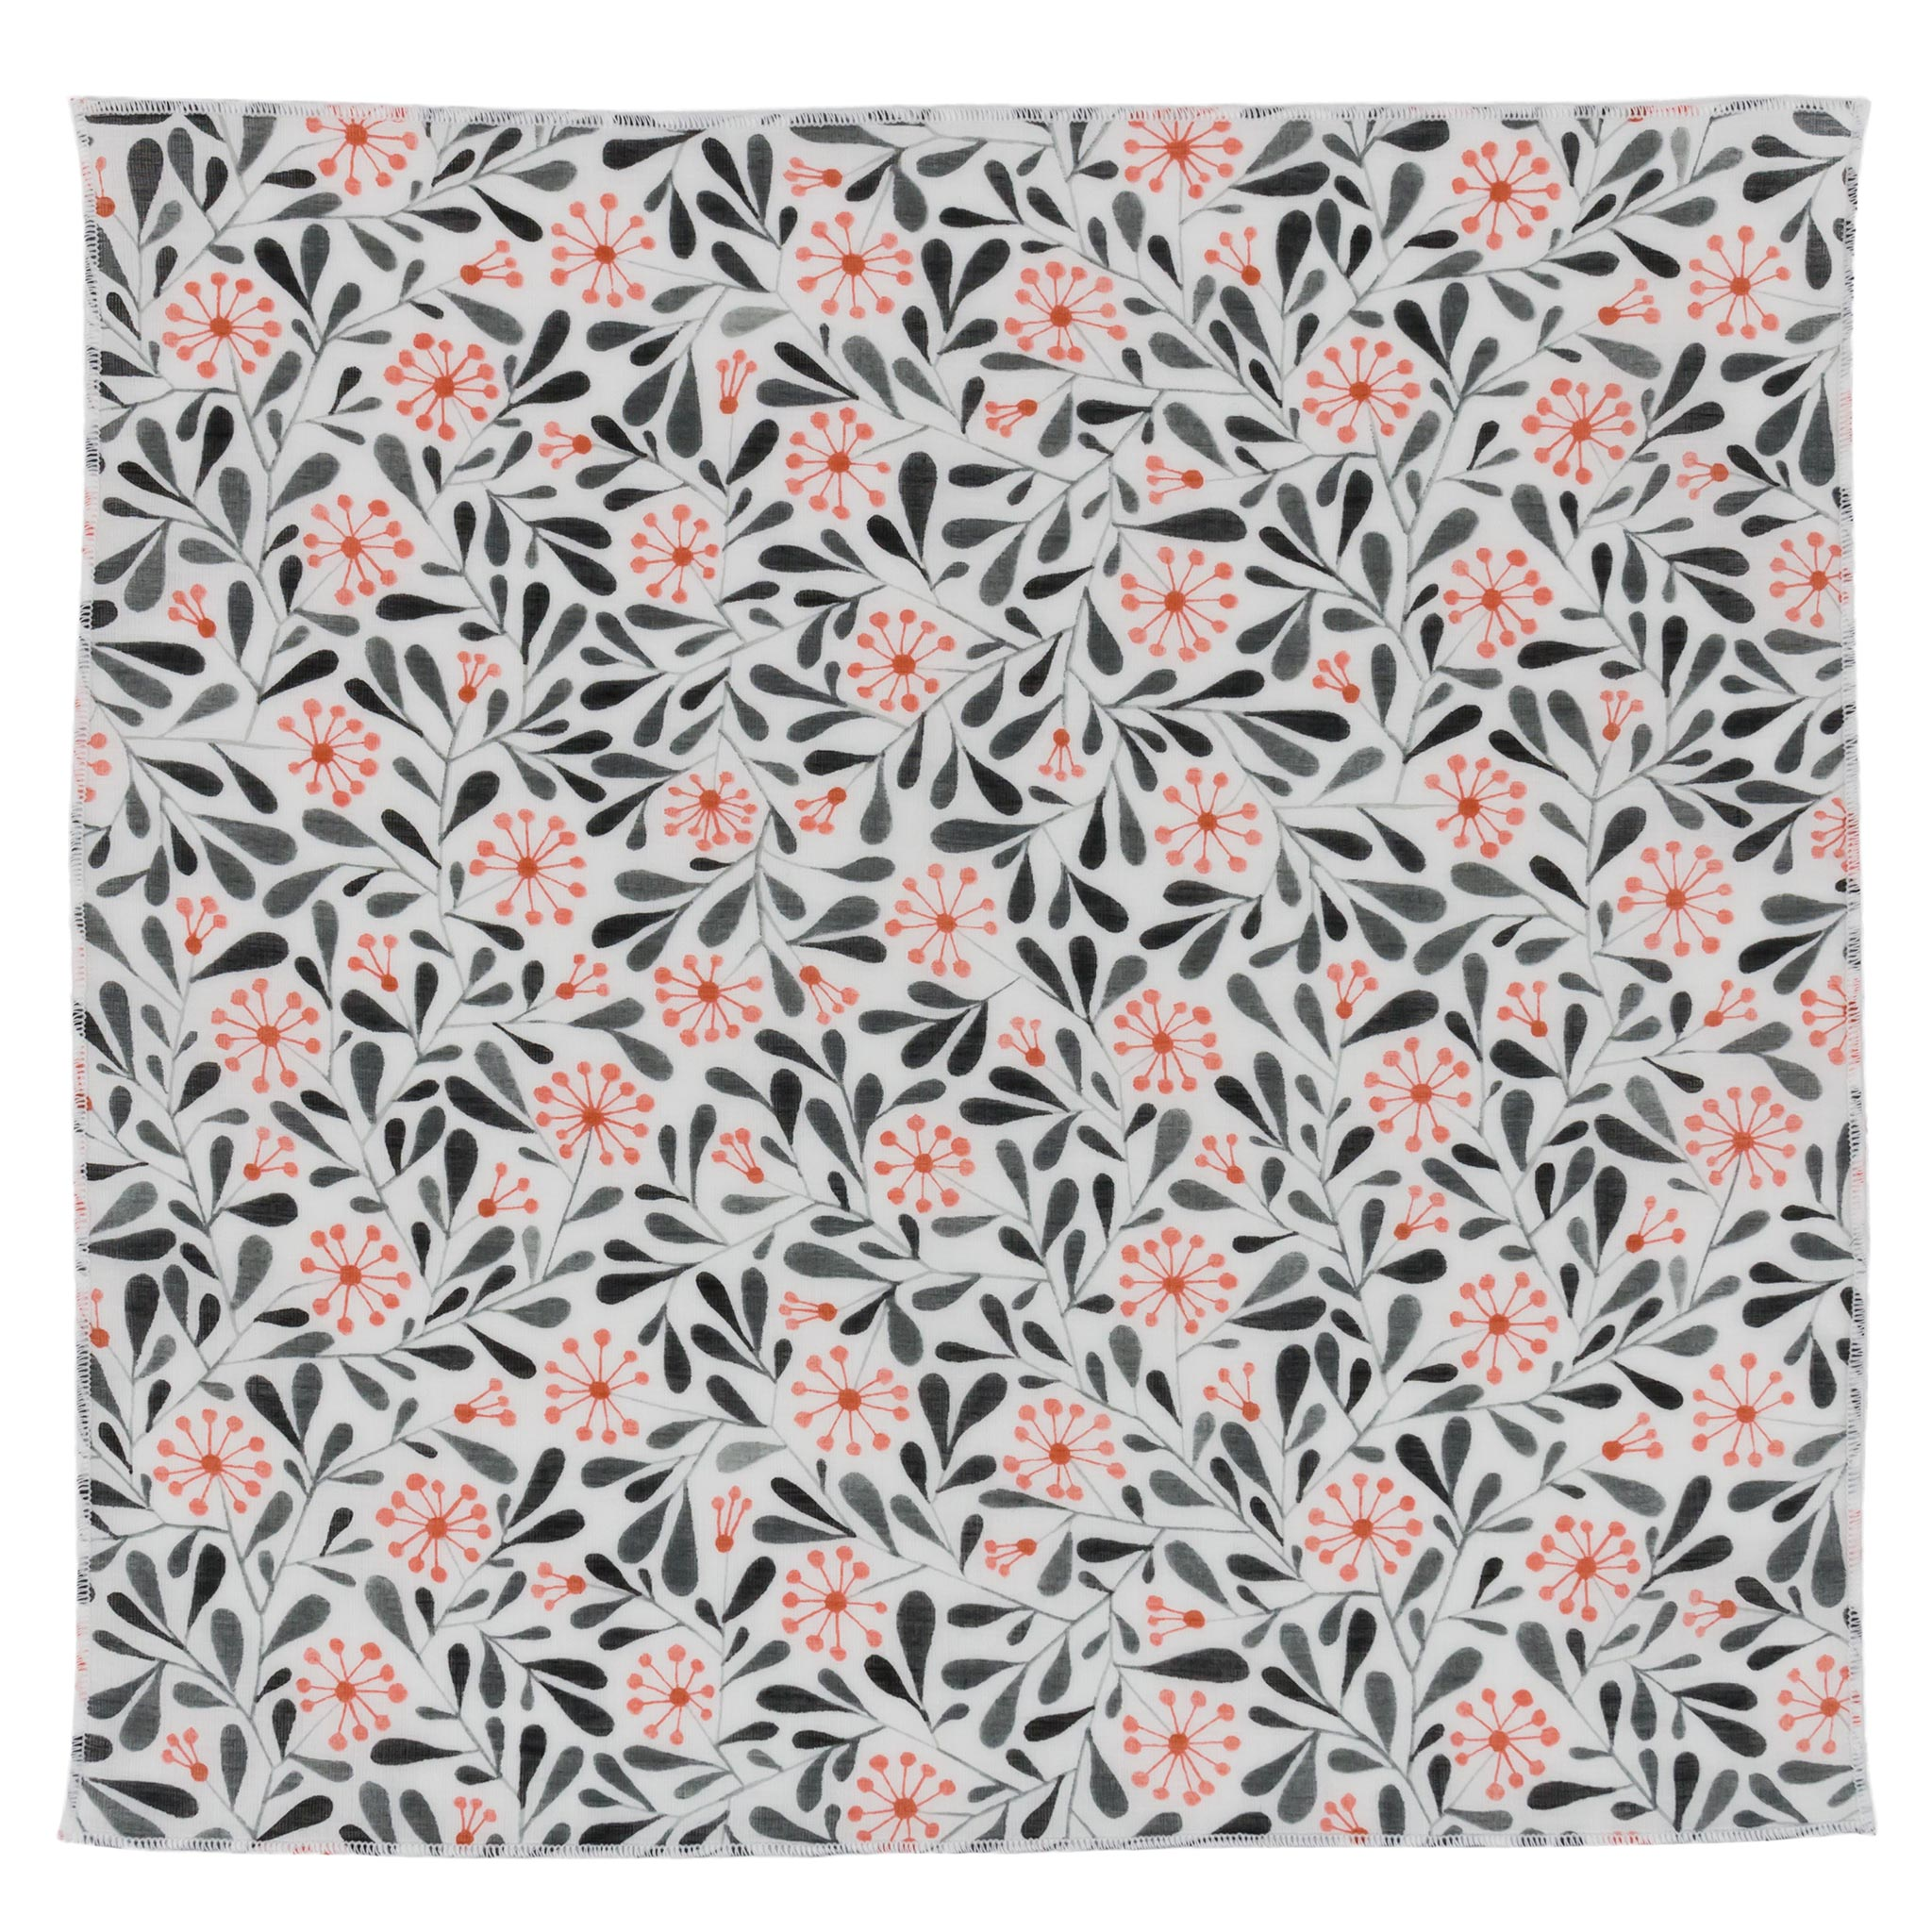 Haro floral organic cotton pocket square made in Canada